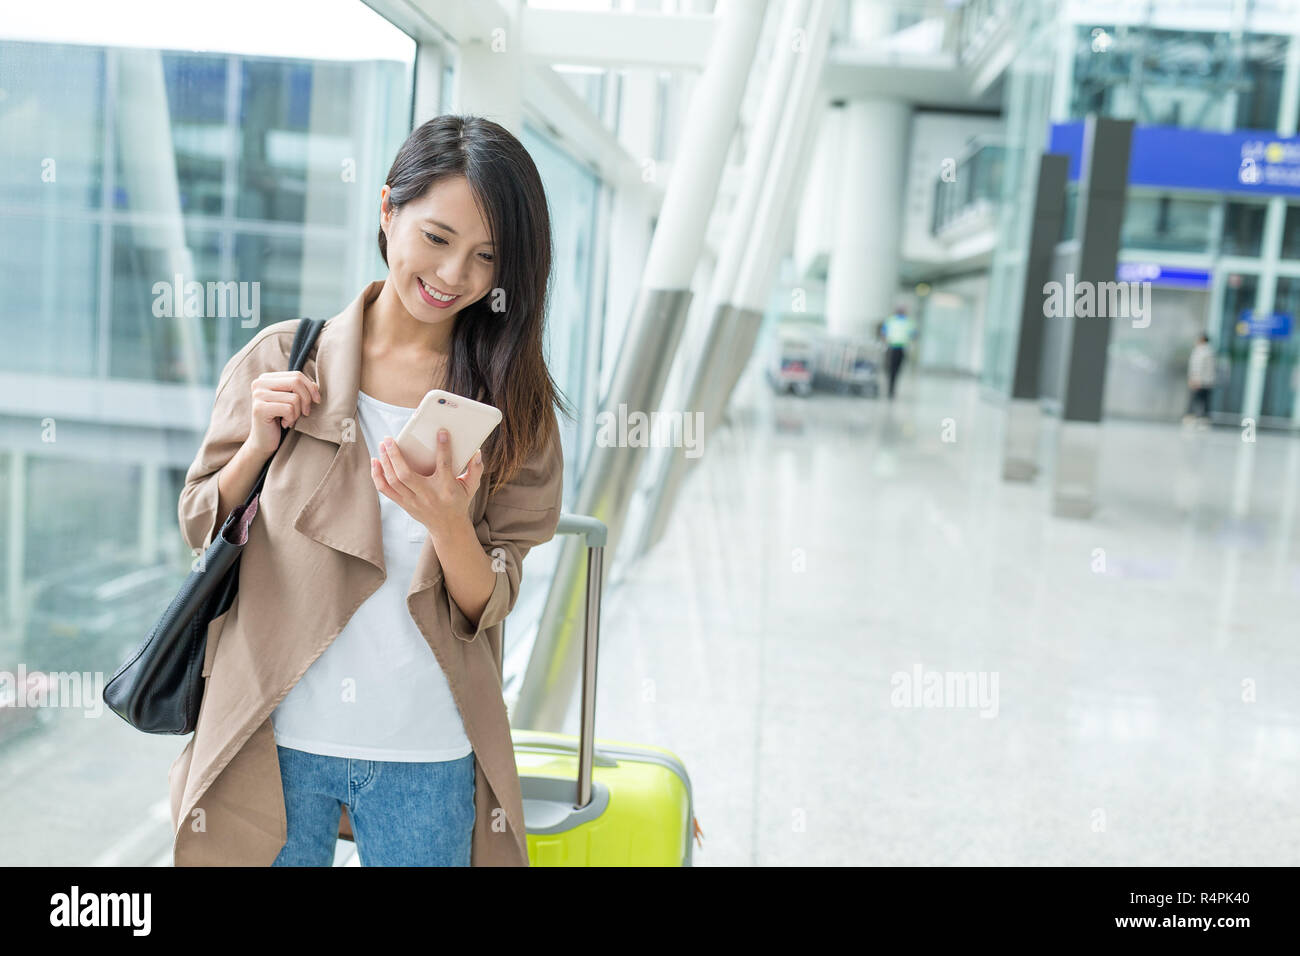 Woman check flight number on mobile phone in airport - Stock Image